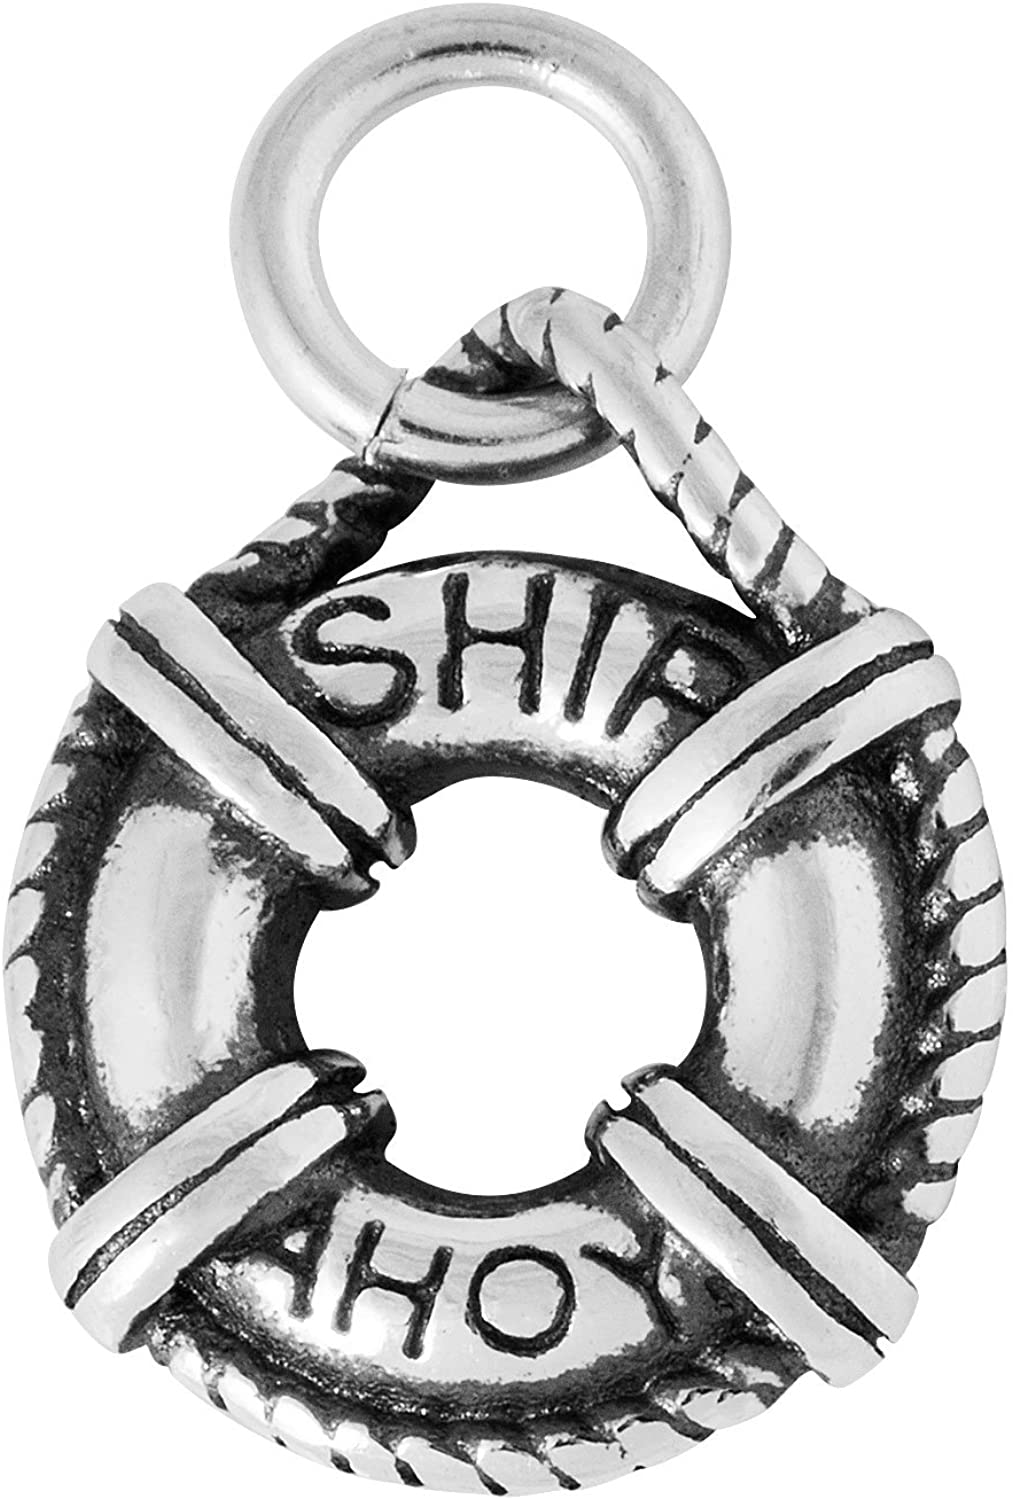 Sterling Silver Charm Bracelet With Attached 3D Cruise Ship Life Preserver Flotation Buoy Ring Charm